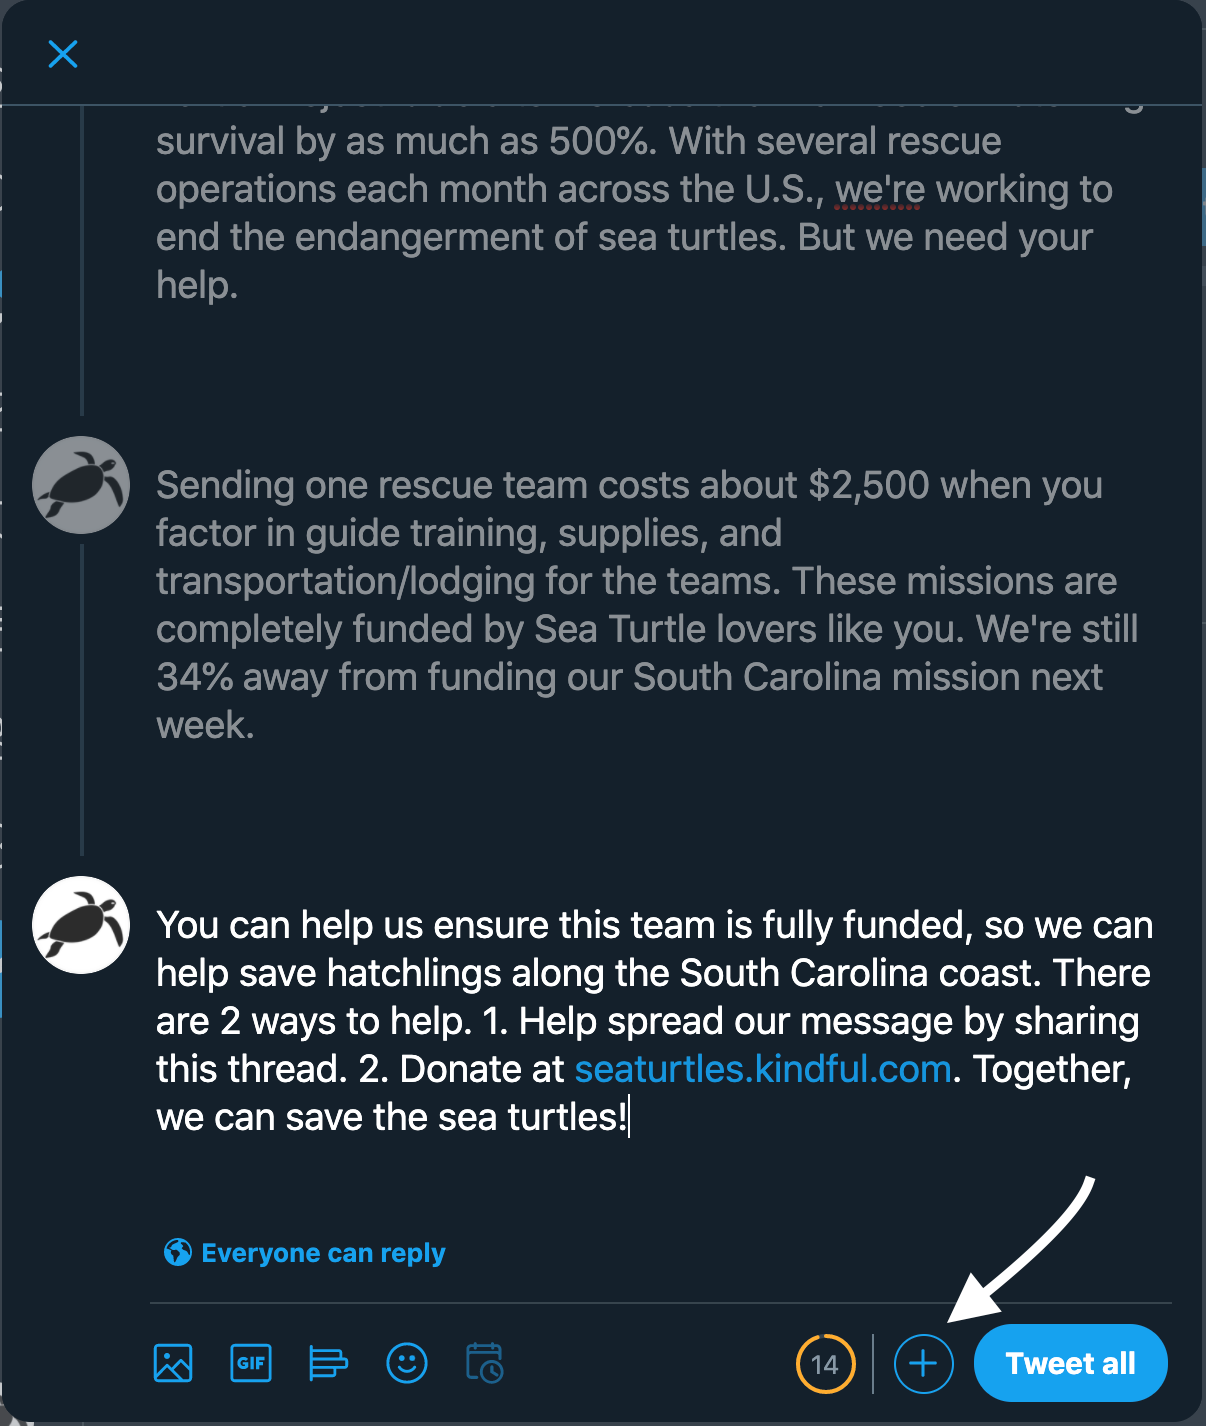 example of using a twitter thread to engage followers